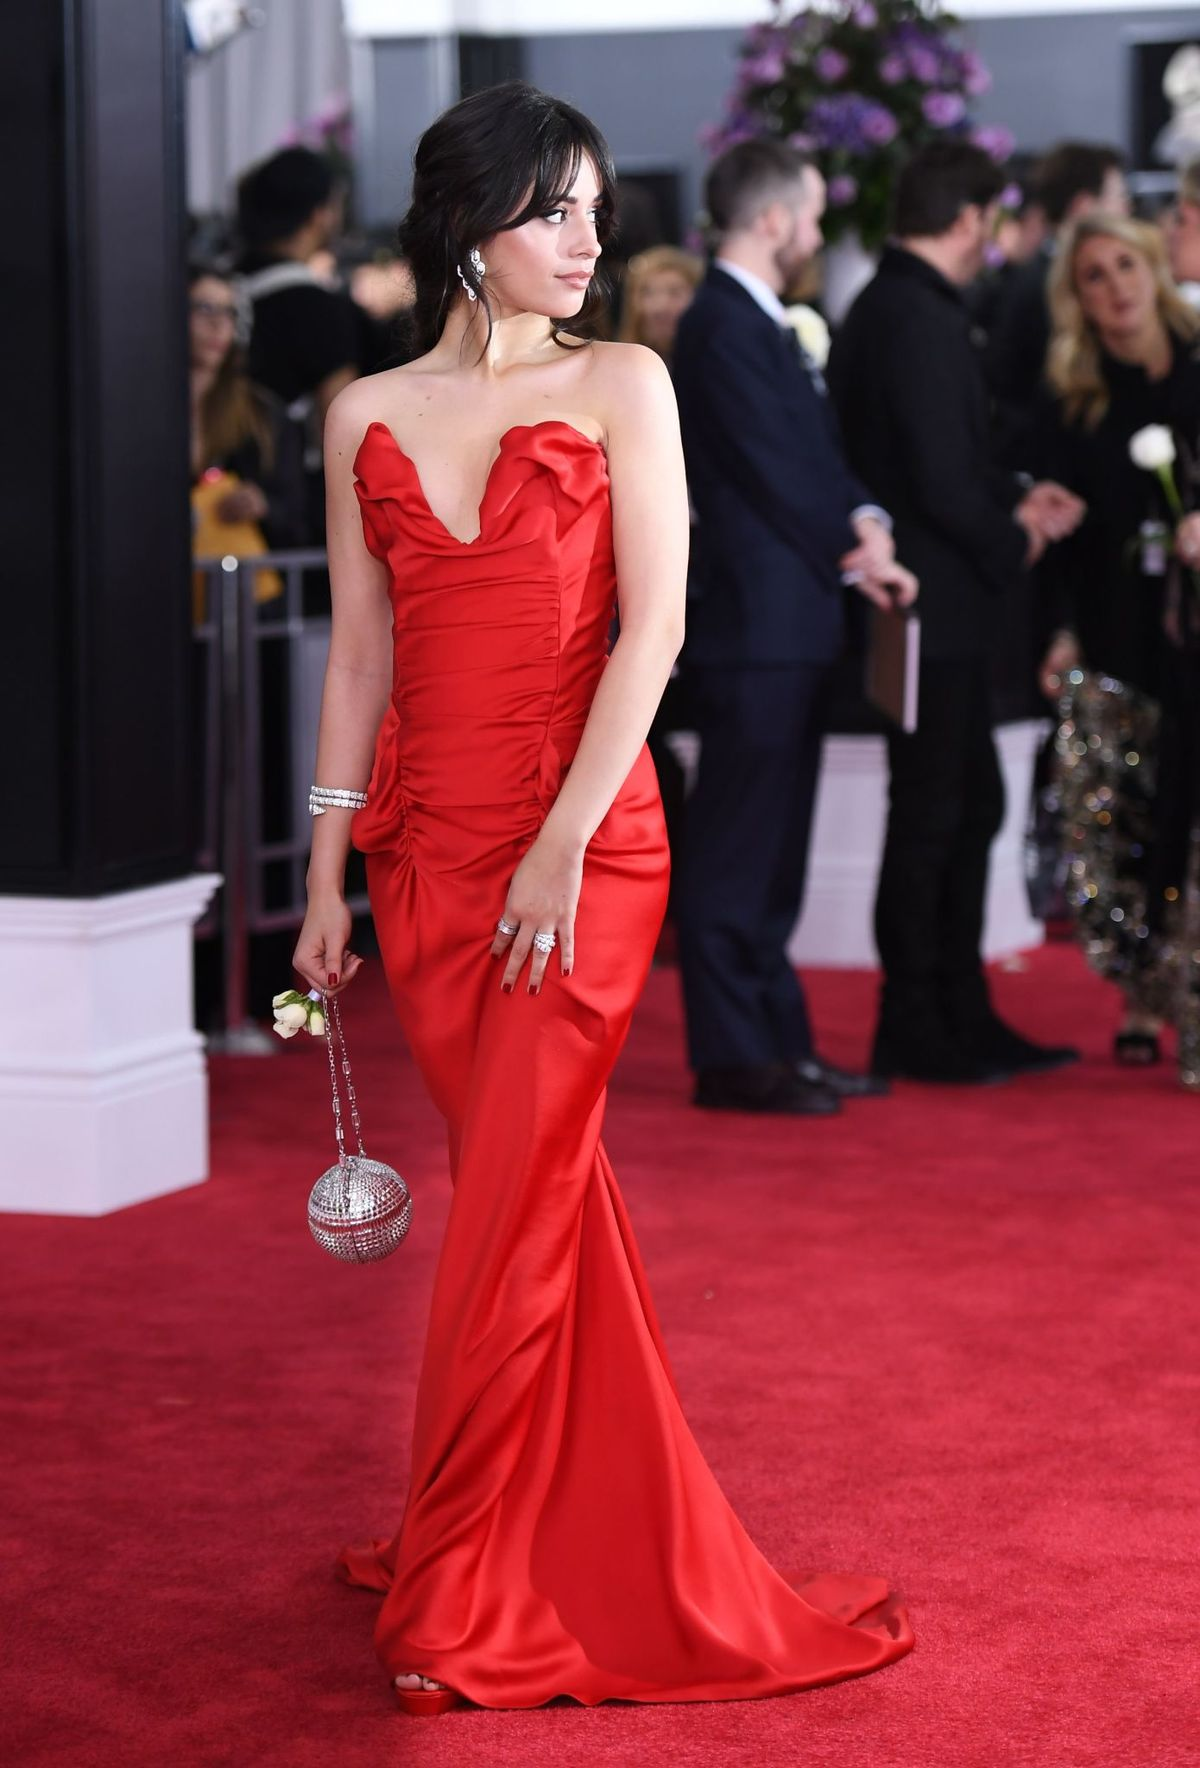 January 28th – 60th Annual GRAMMY Awards – Red Carpet